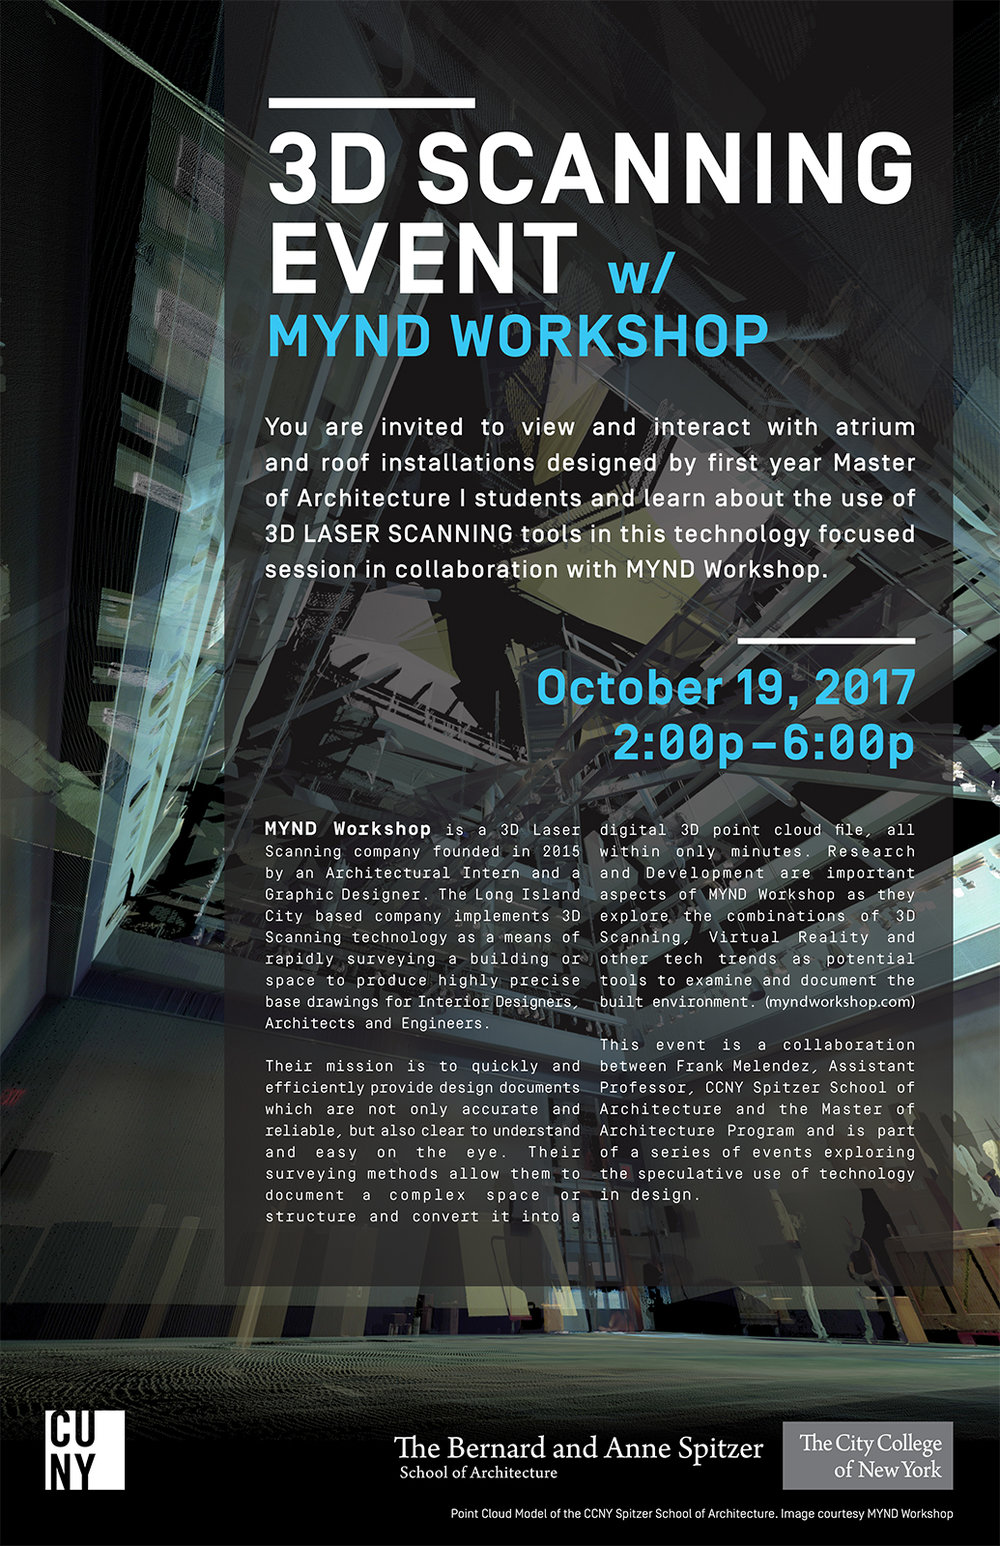 CITY-COLLEGE-CUNY-POSTER-3D-W-laser-scanning-point-cloud-new-york.jpg